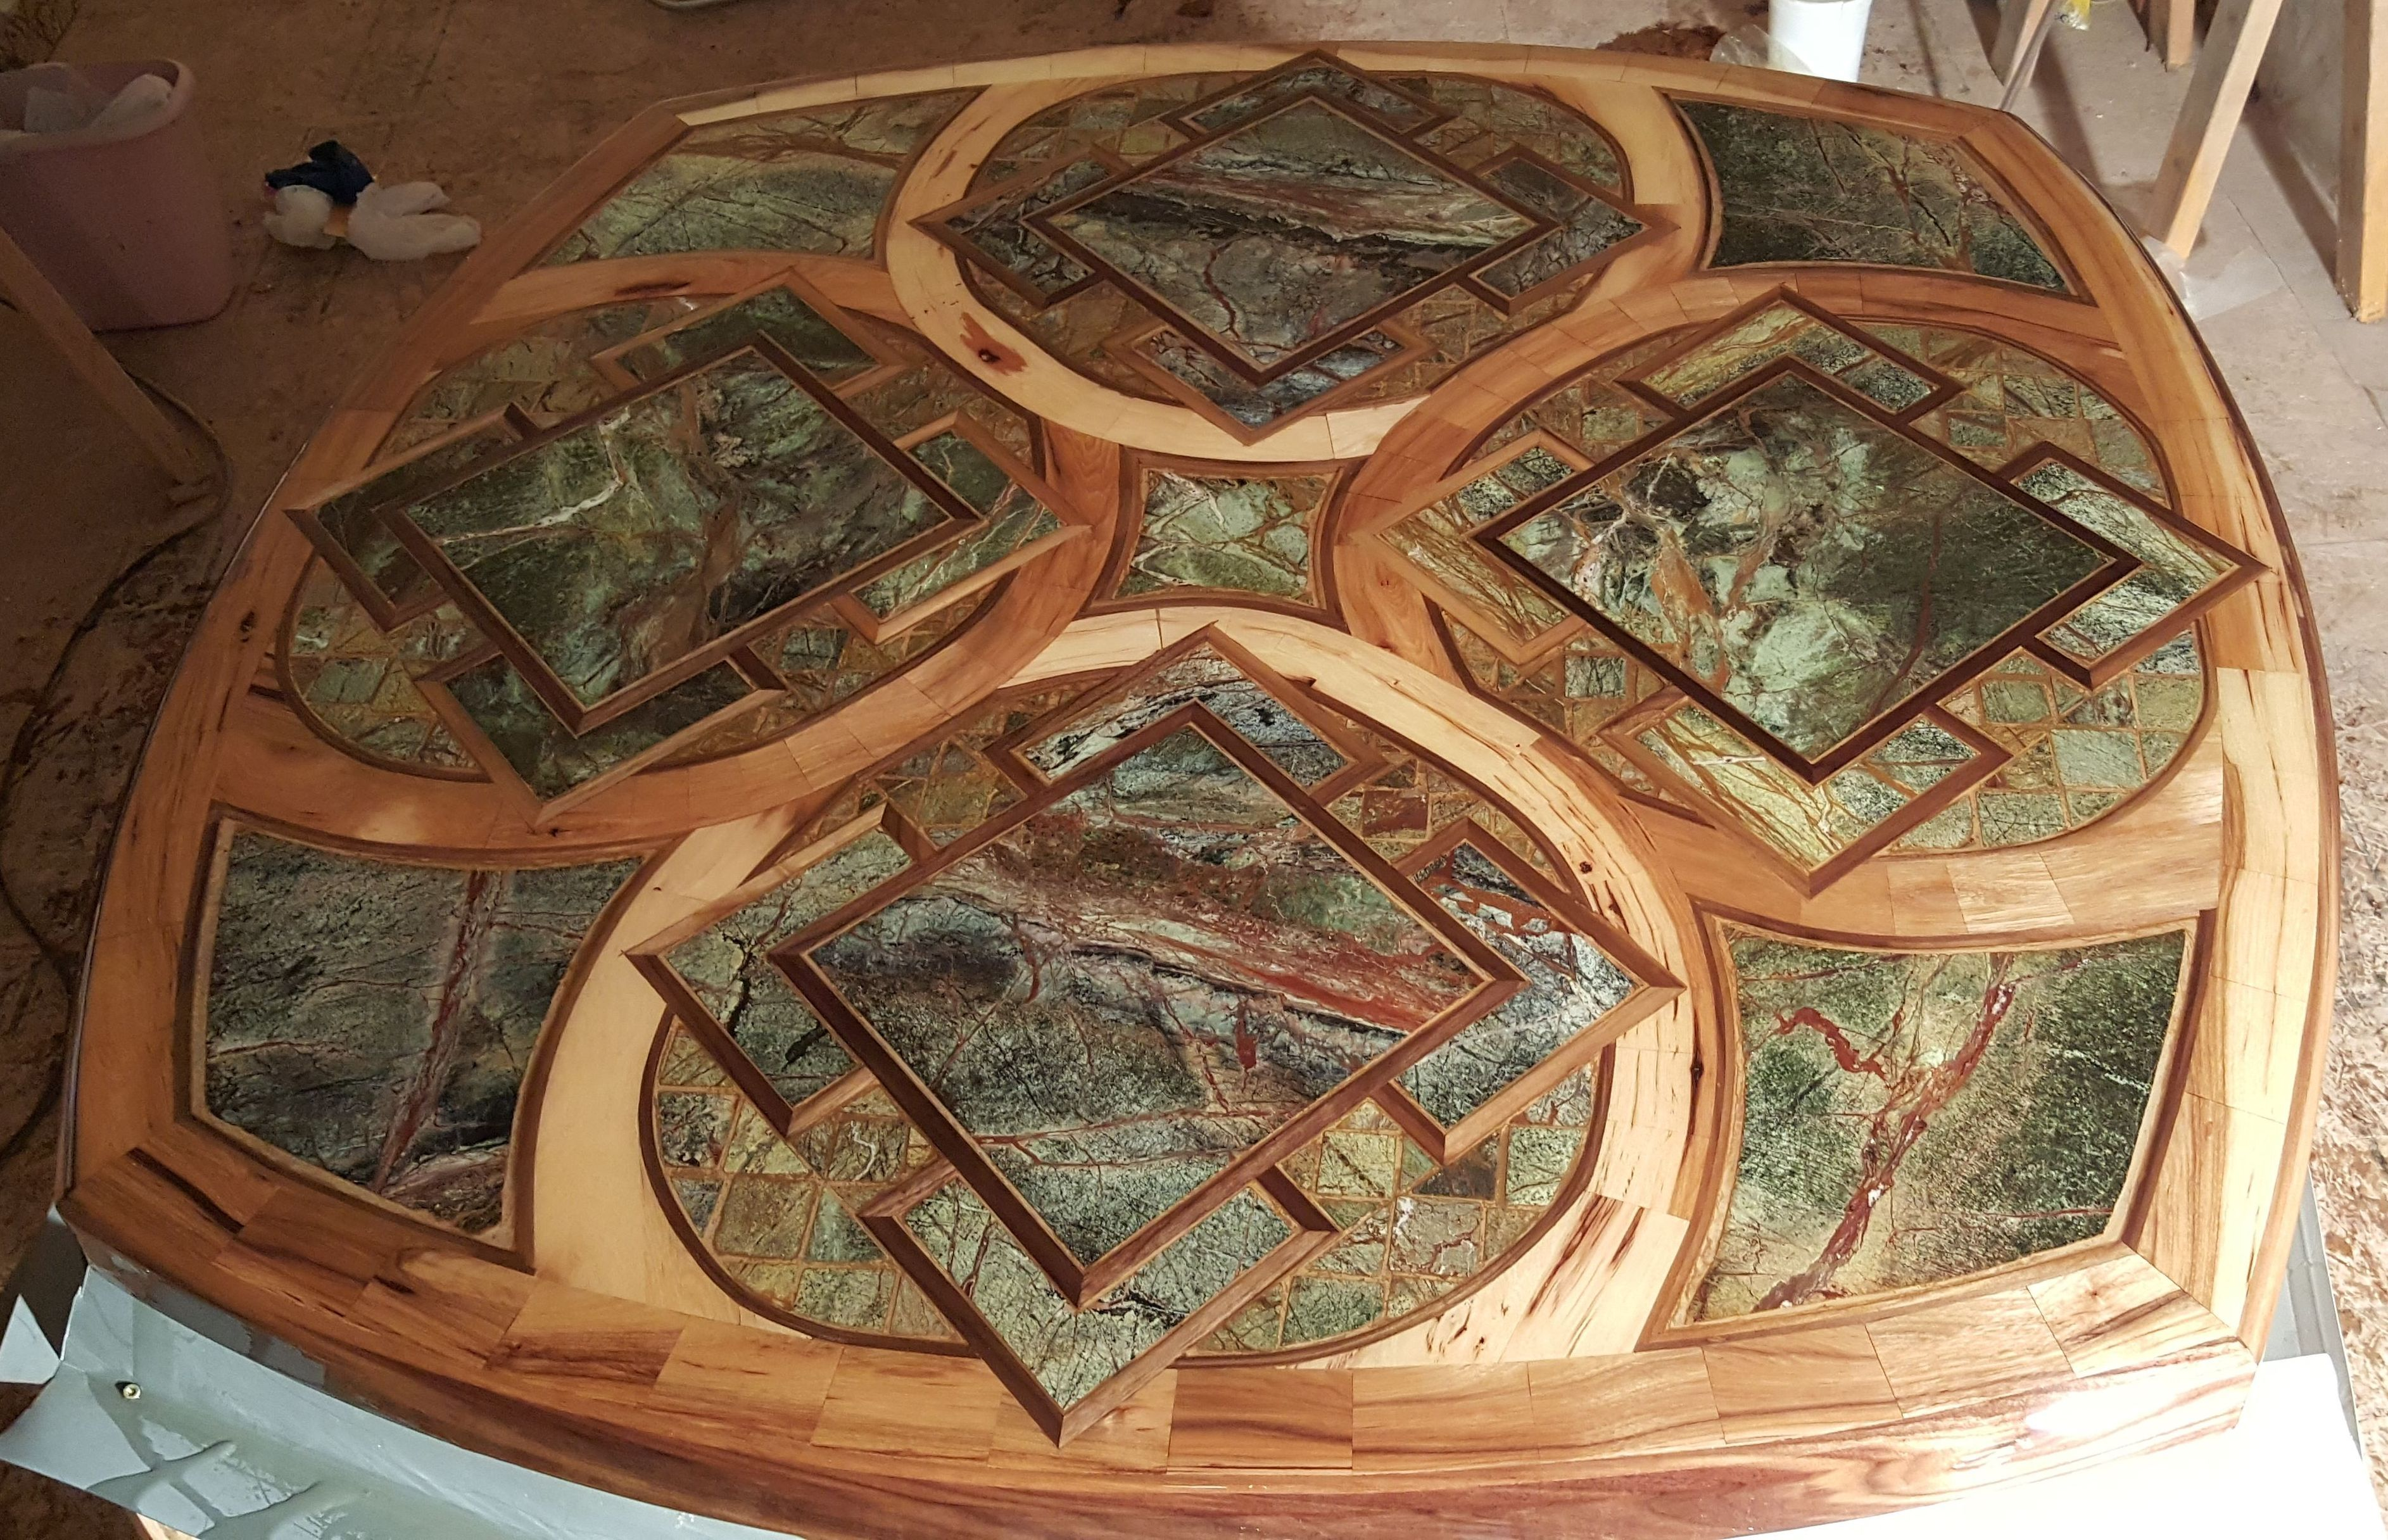 Inlayed table top 1 epoxy resin coatings casting mold